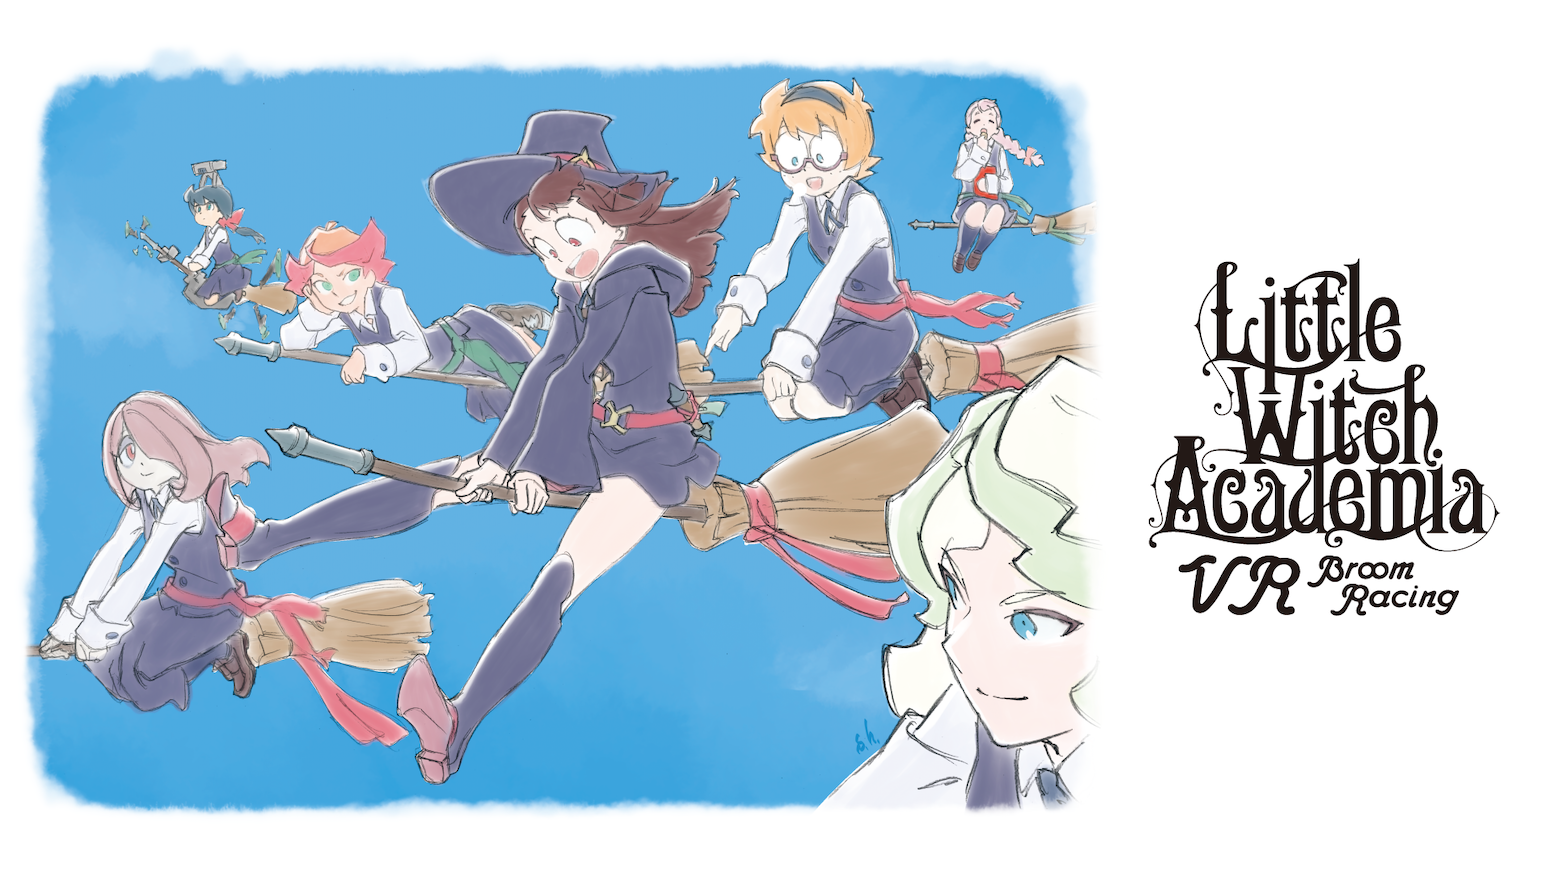 TRIGGER's Little Witch Academia will be coming as a VR broom racing game in which you can fly around the sky with Akko and her friends!